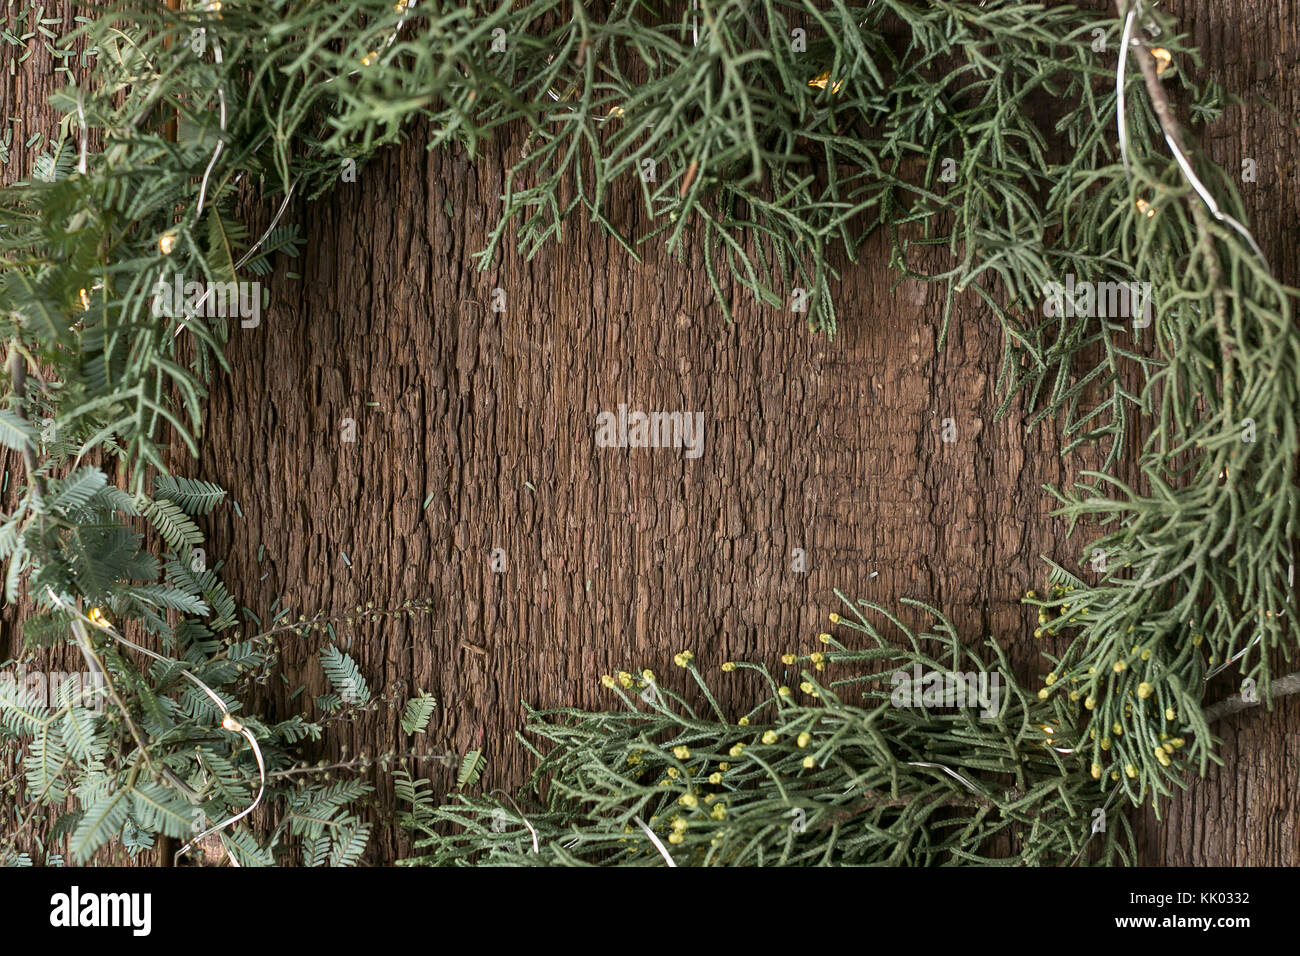 planting, nature, growing concept. there is free space for text in the frame made of various kinds of fresh conifer - Stock Image